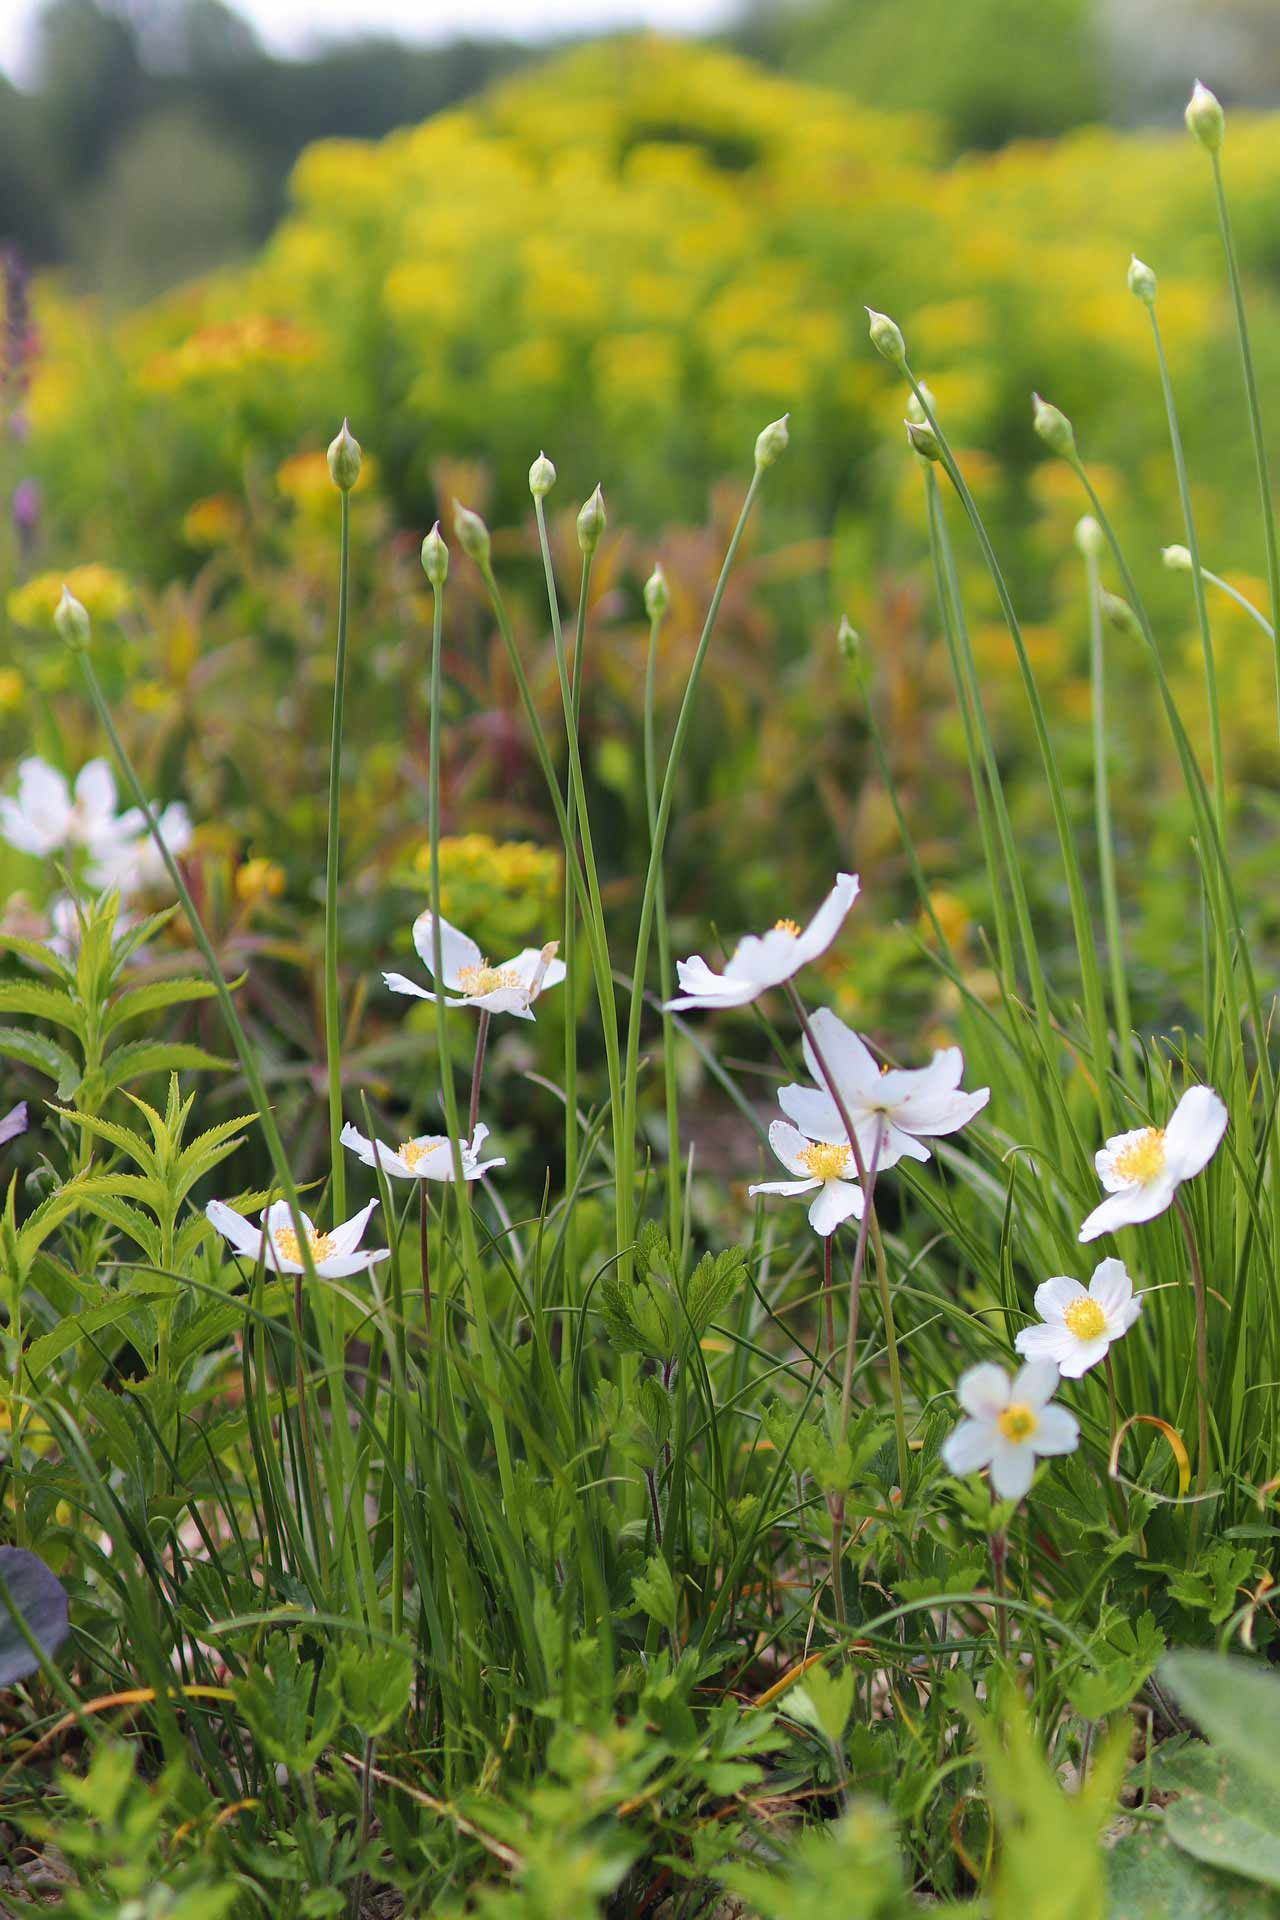 A beautiful photo of white anemones in the foreground and a blurred field in the background.